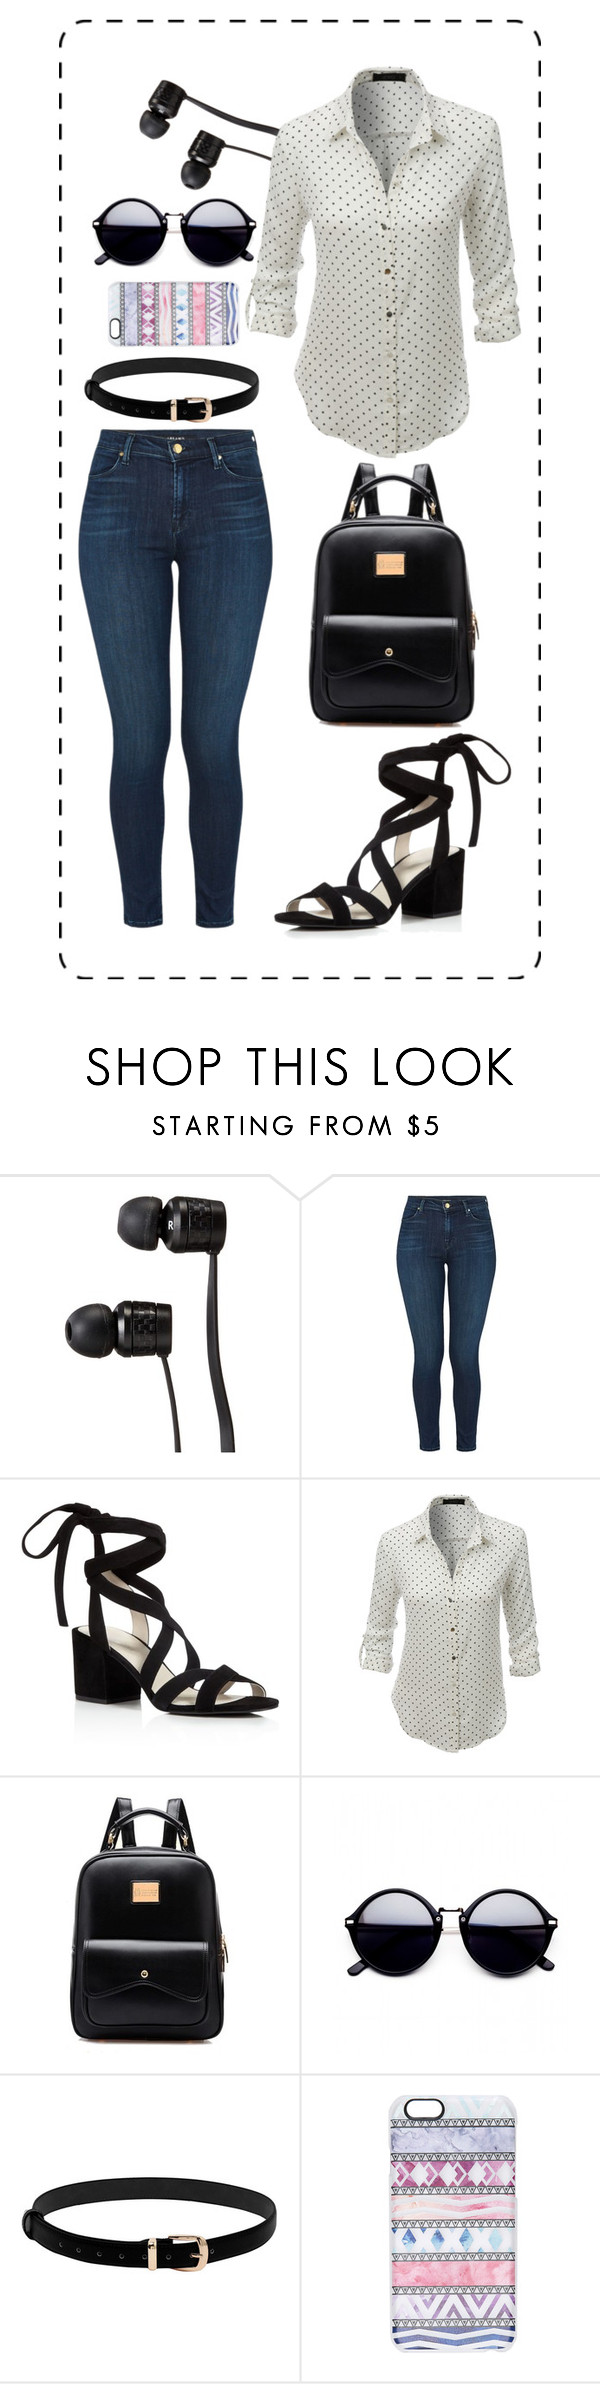 """Untitled #235"" by lucky1guppy on Polyvore featuring Vans, J Brand, Kenneth Cole, LE3NO and Casetify"